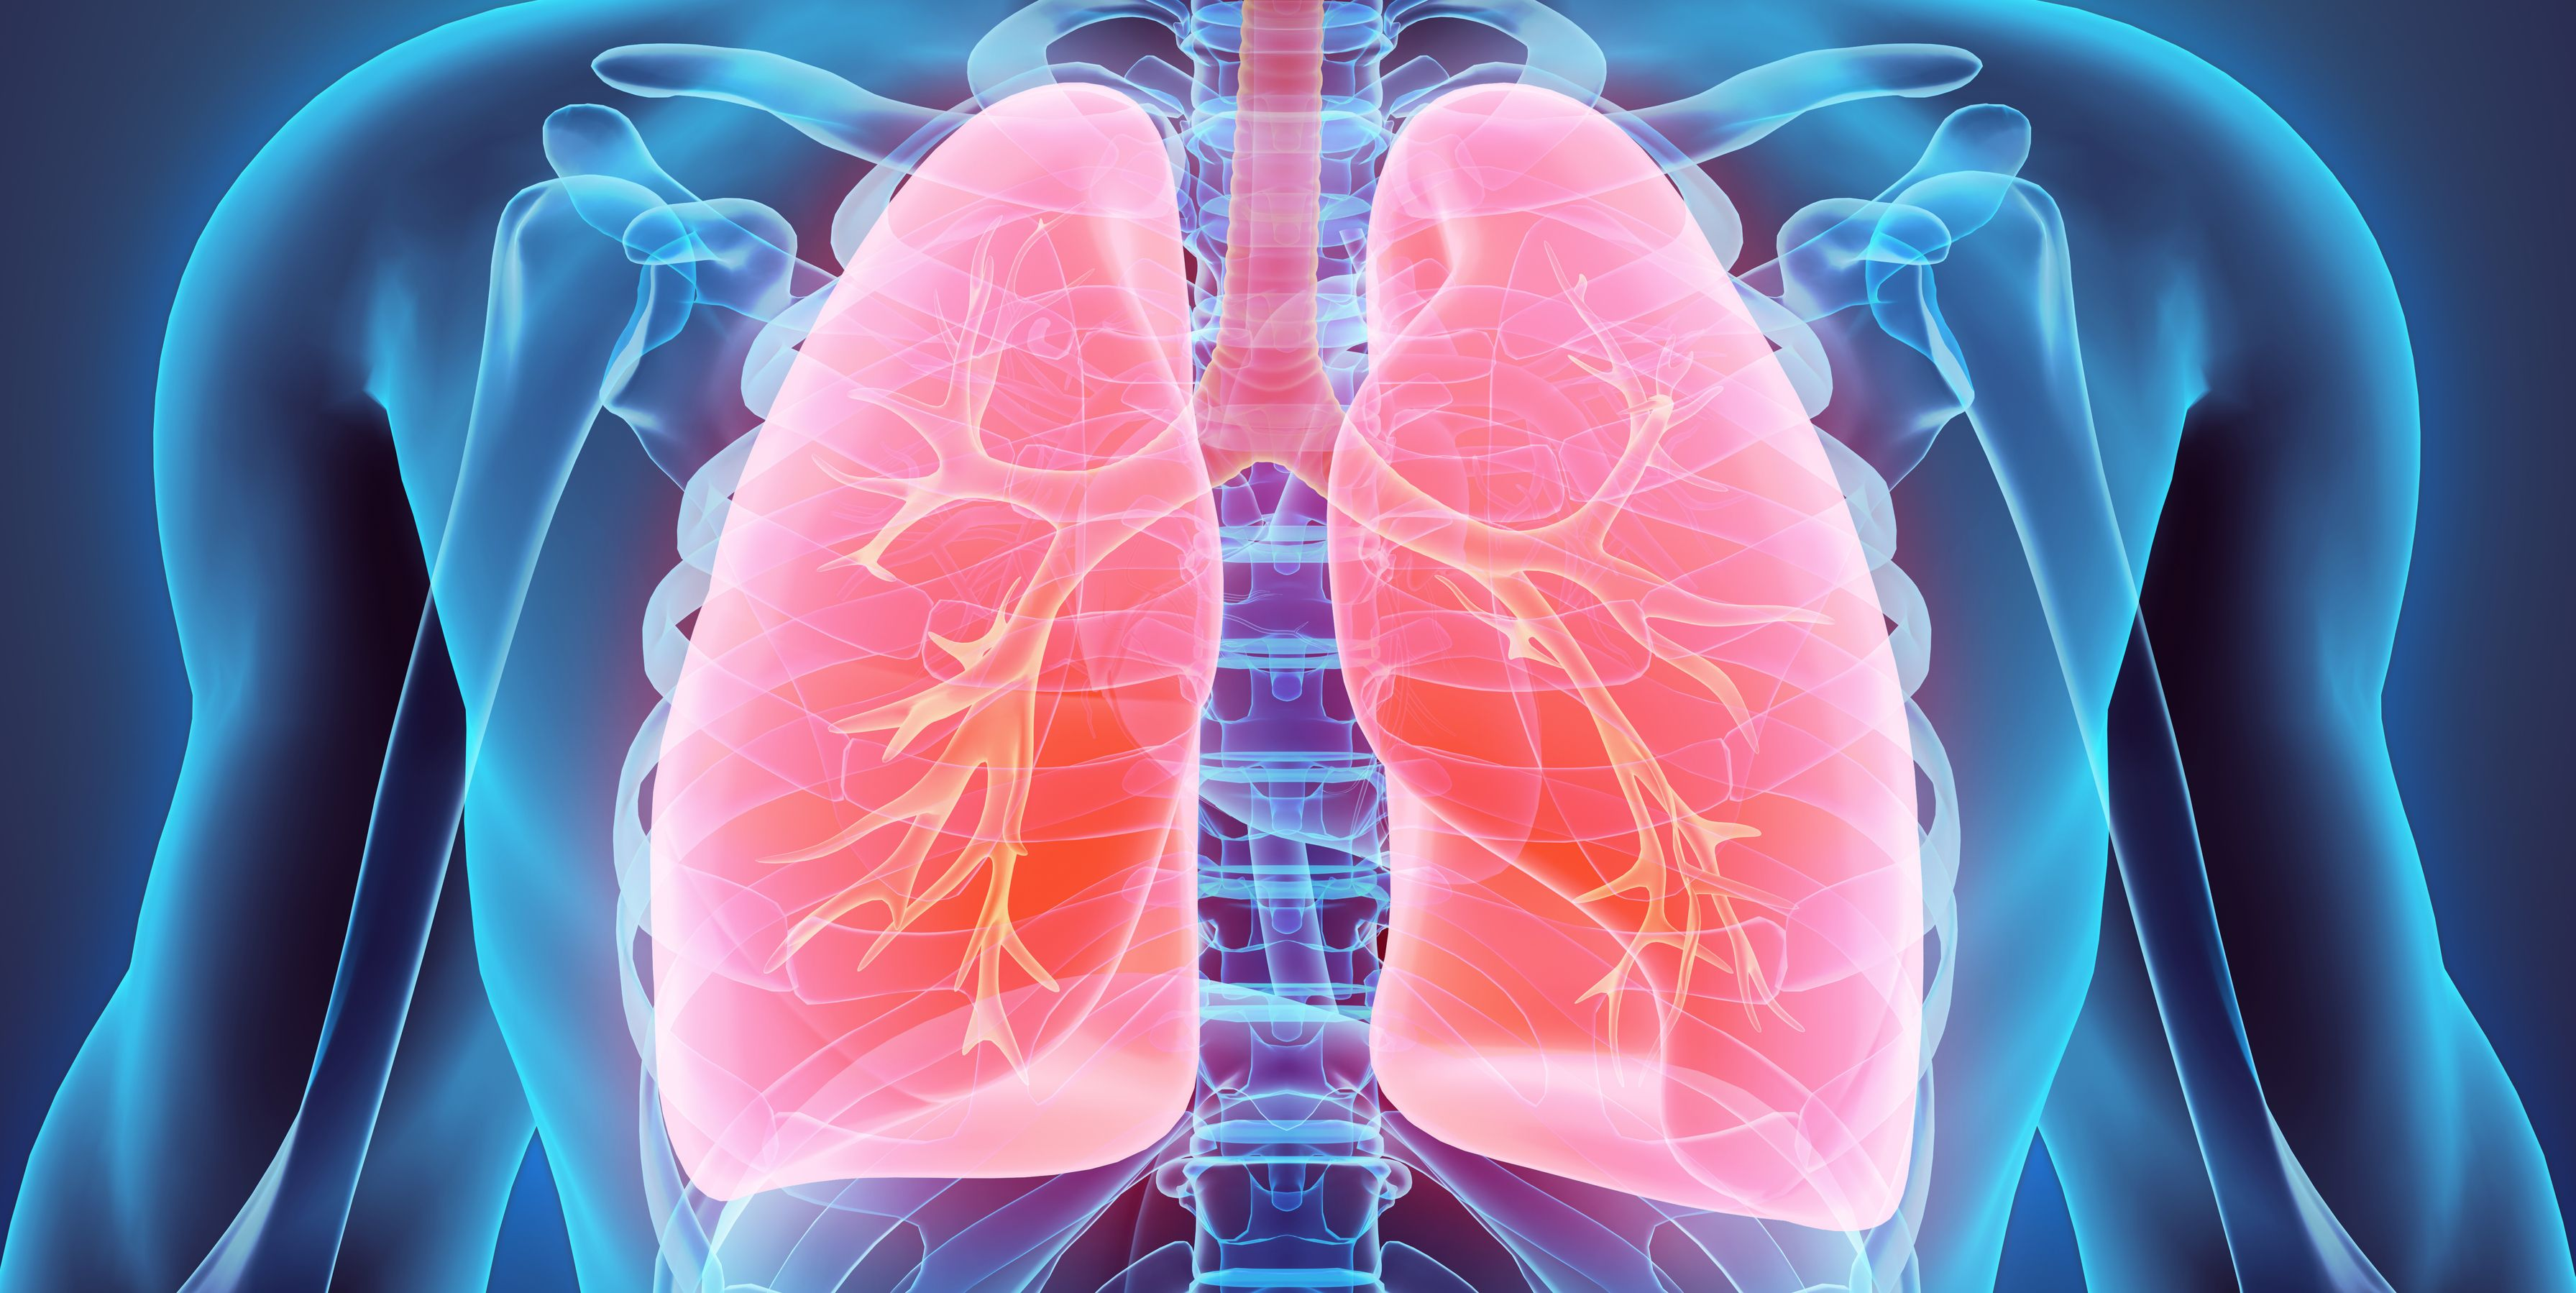 10 Things You Can Do Today to Reduce Your Lung Cancer Risk